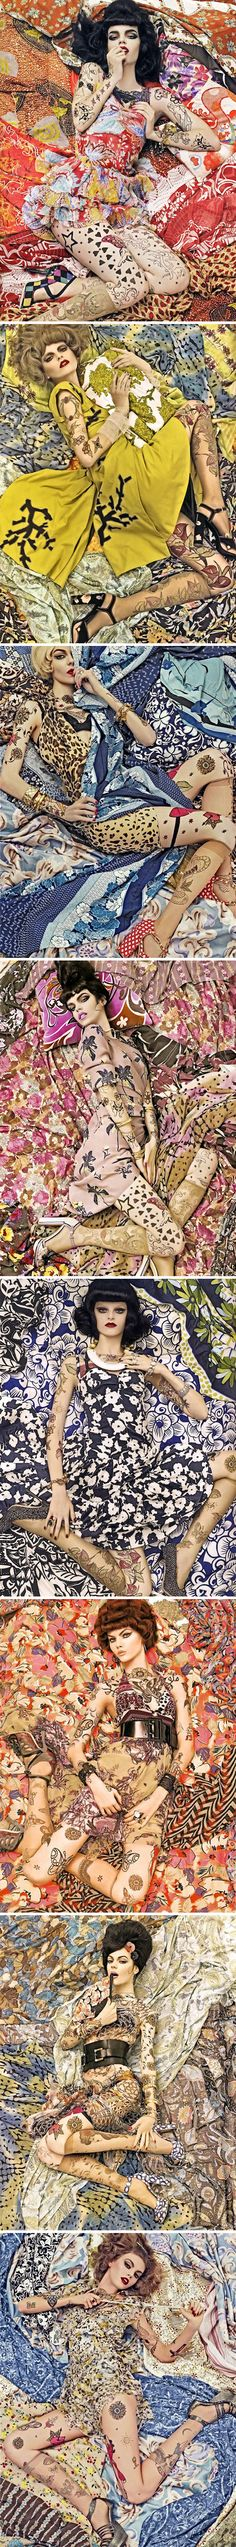 Steven Meisel in 2007 for Vogue Italia Spring Patterns Issue